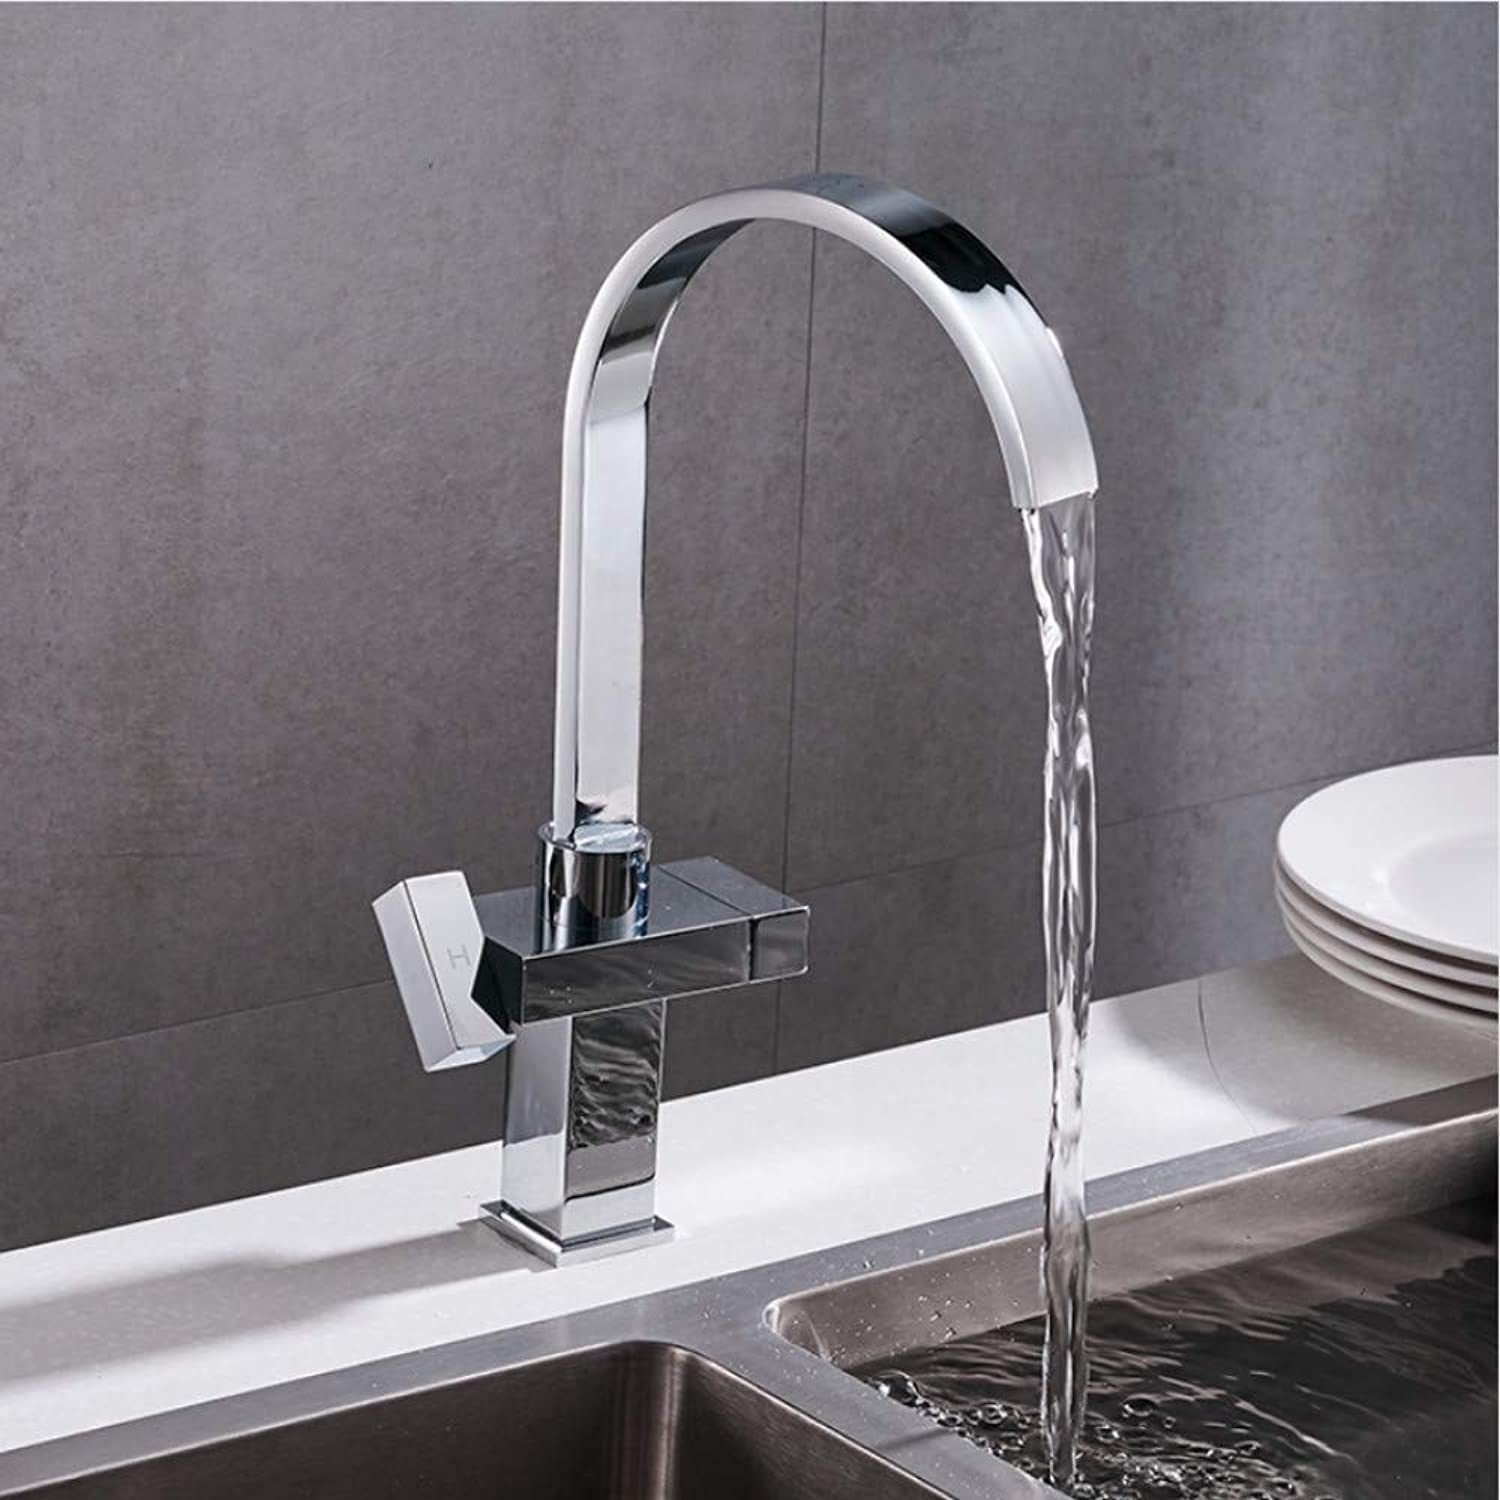 Lddpl Tap New Arrival Dual Holder Single Hole Kitchen Faucet Deck Mounted Hot and Cold Water Mixer Tap Kitchen Sink Mixer